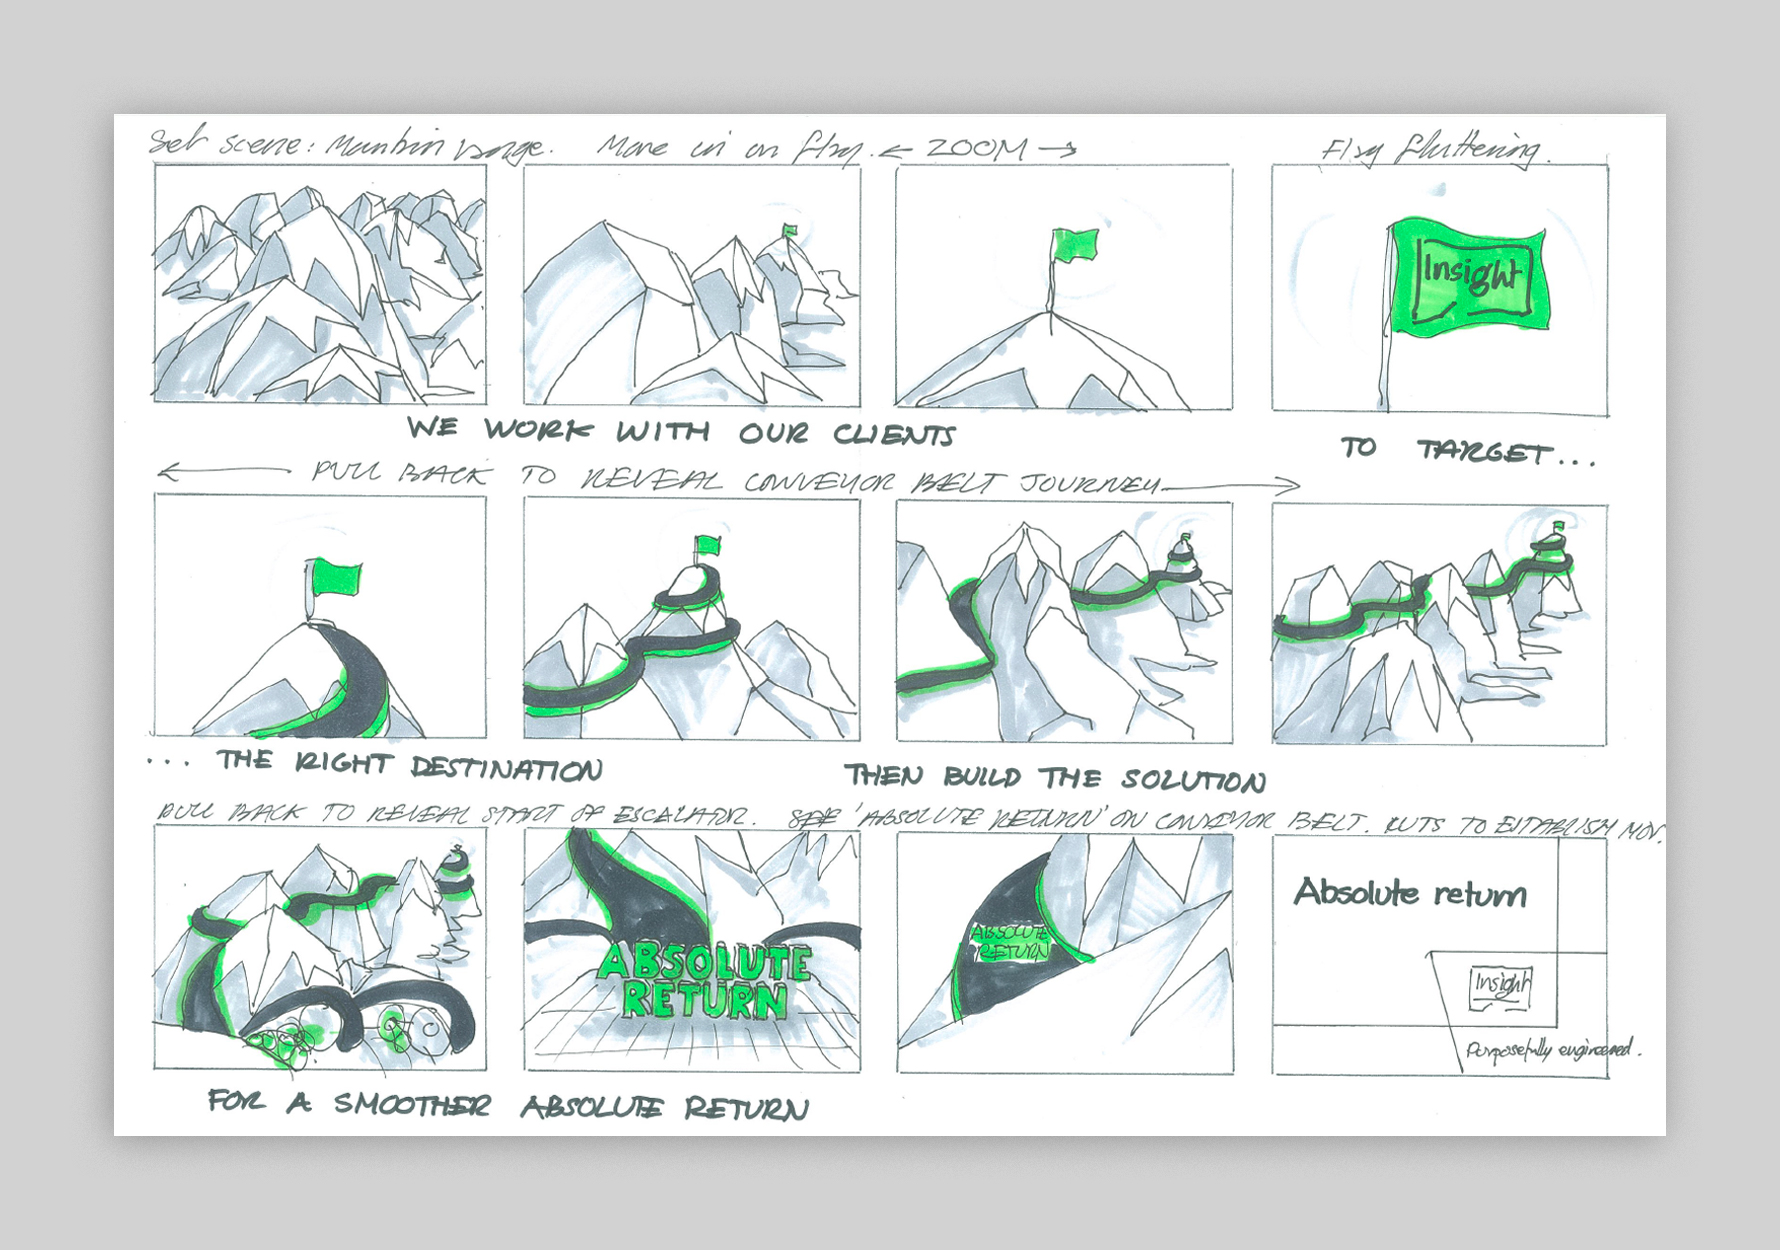 insight investment escalator campaign storyboard inpage1